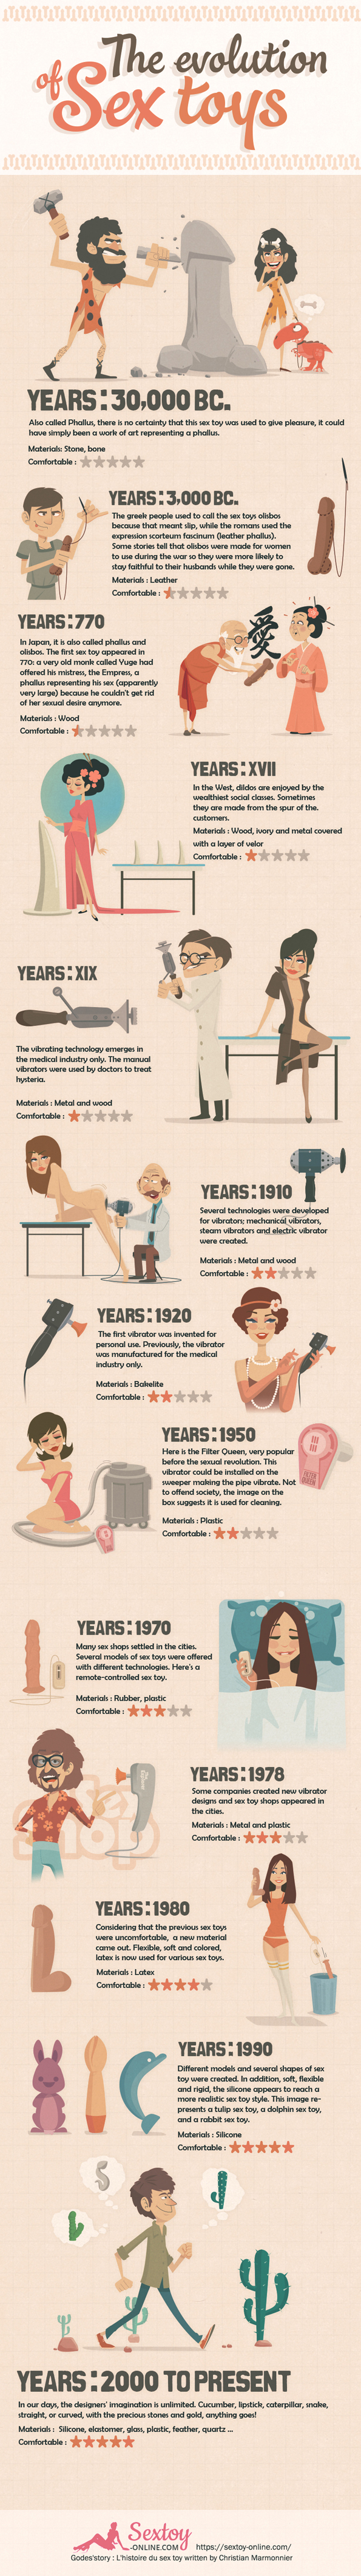 sex-toy-history-infographic-595